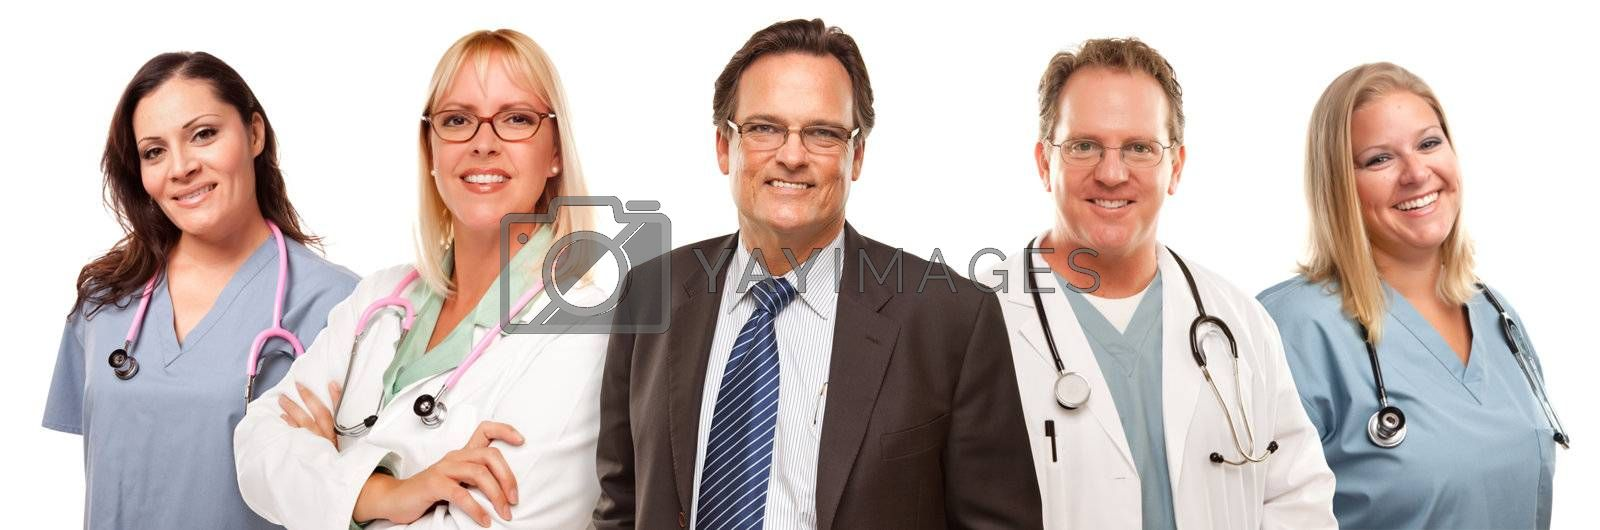 Businessman with Doctors or Nurses Behind Isolated on a White Background.